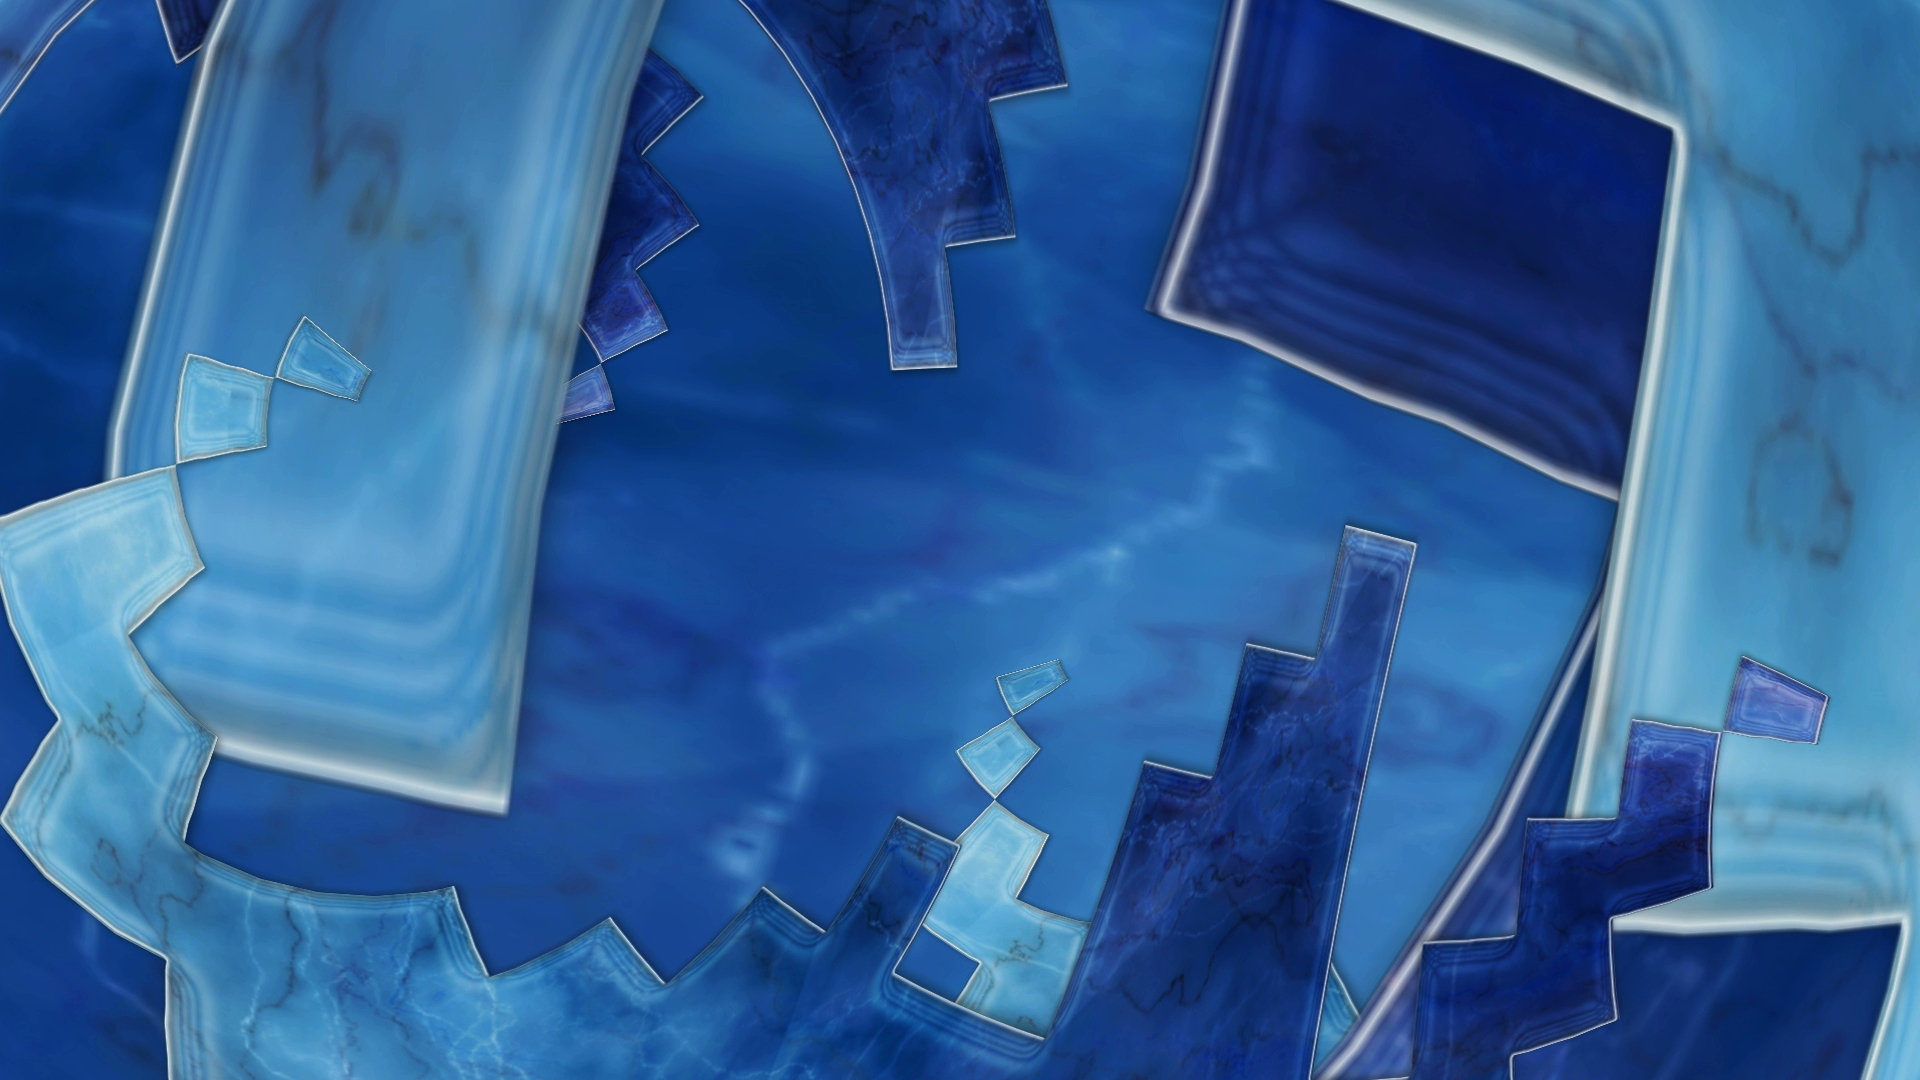 Blue Marble 3D Video Still by Carrie Gates